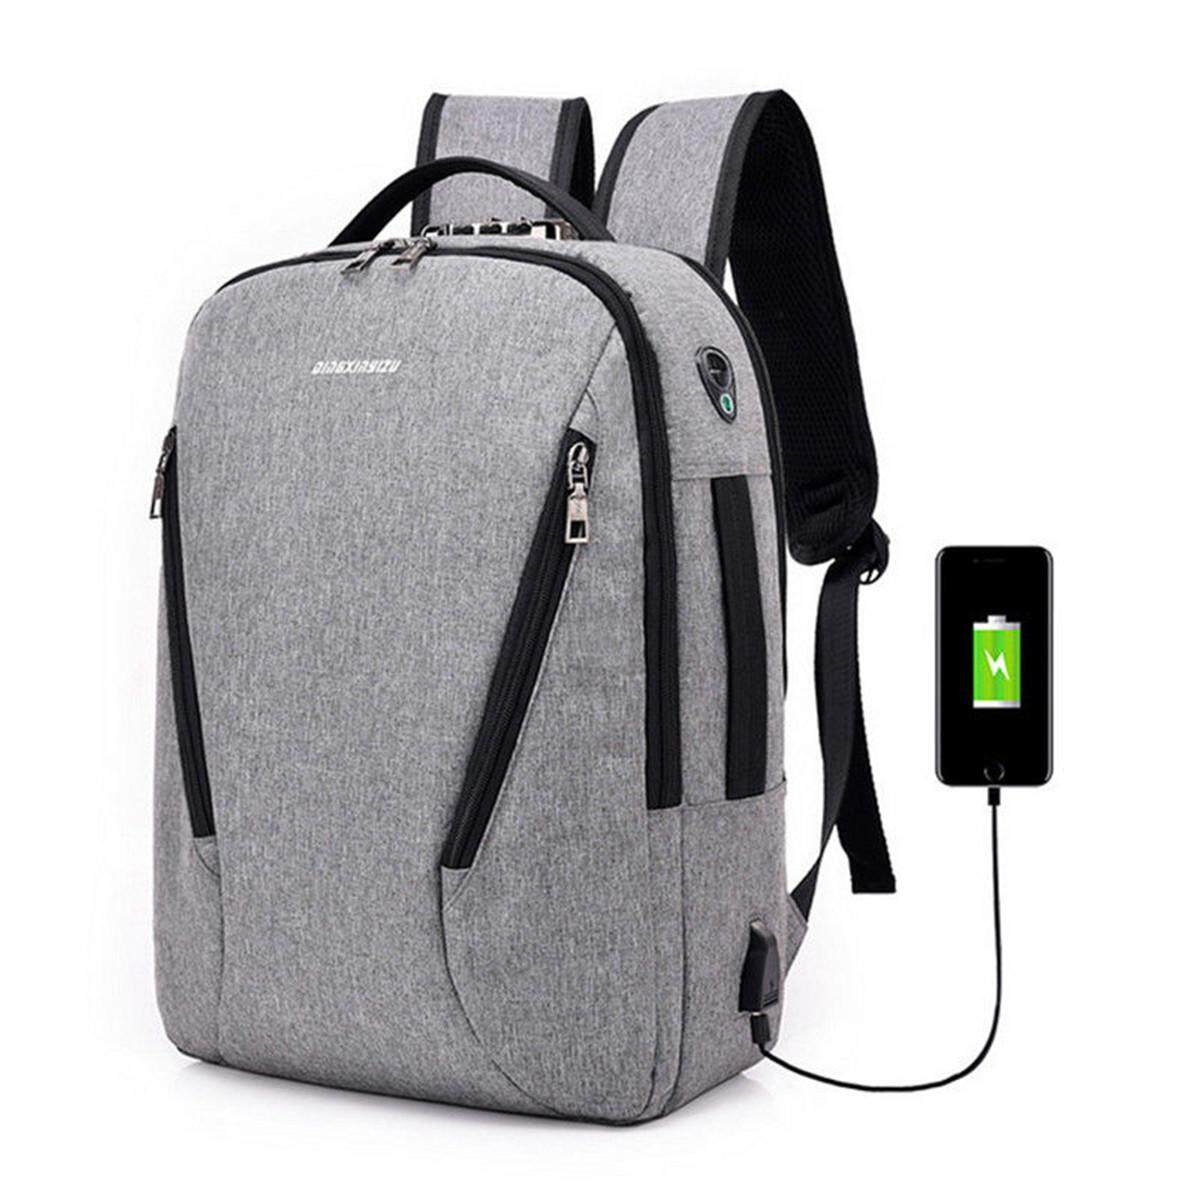 a5ca07a934 Anti-theft Mens Womens Laptop Notebook Backpack USB Charging Port School Bag  New grey